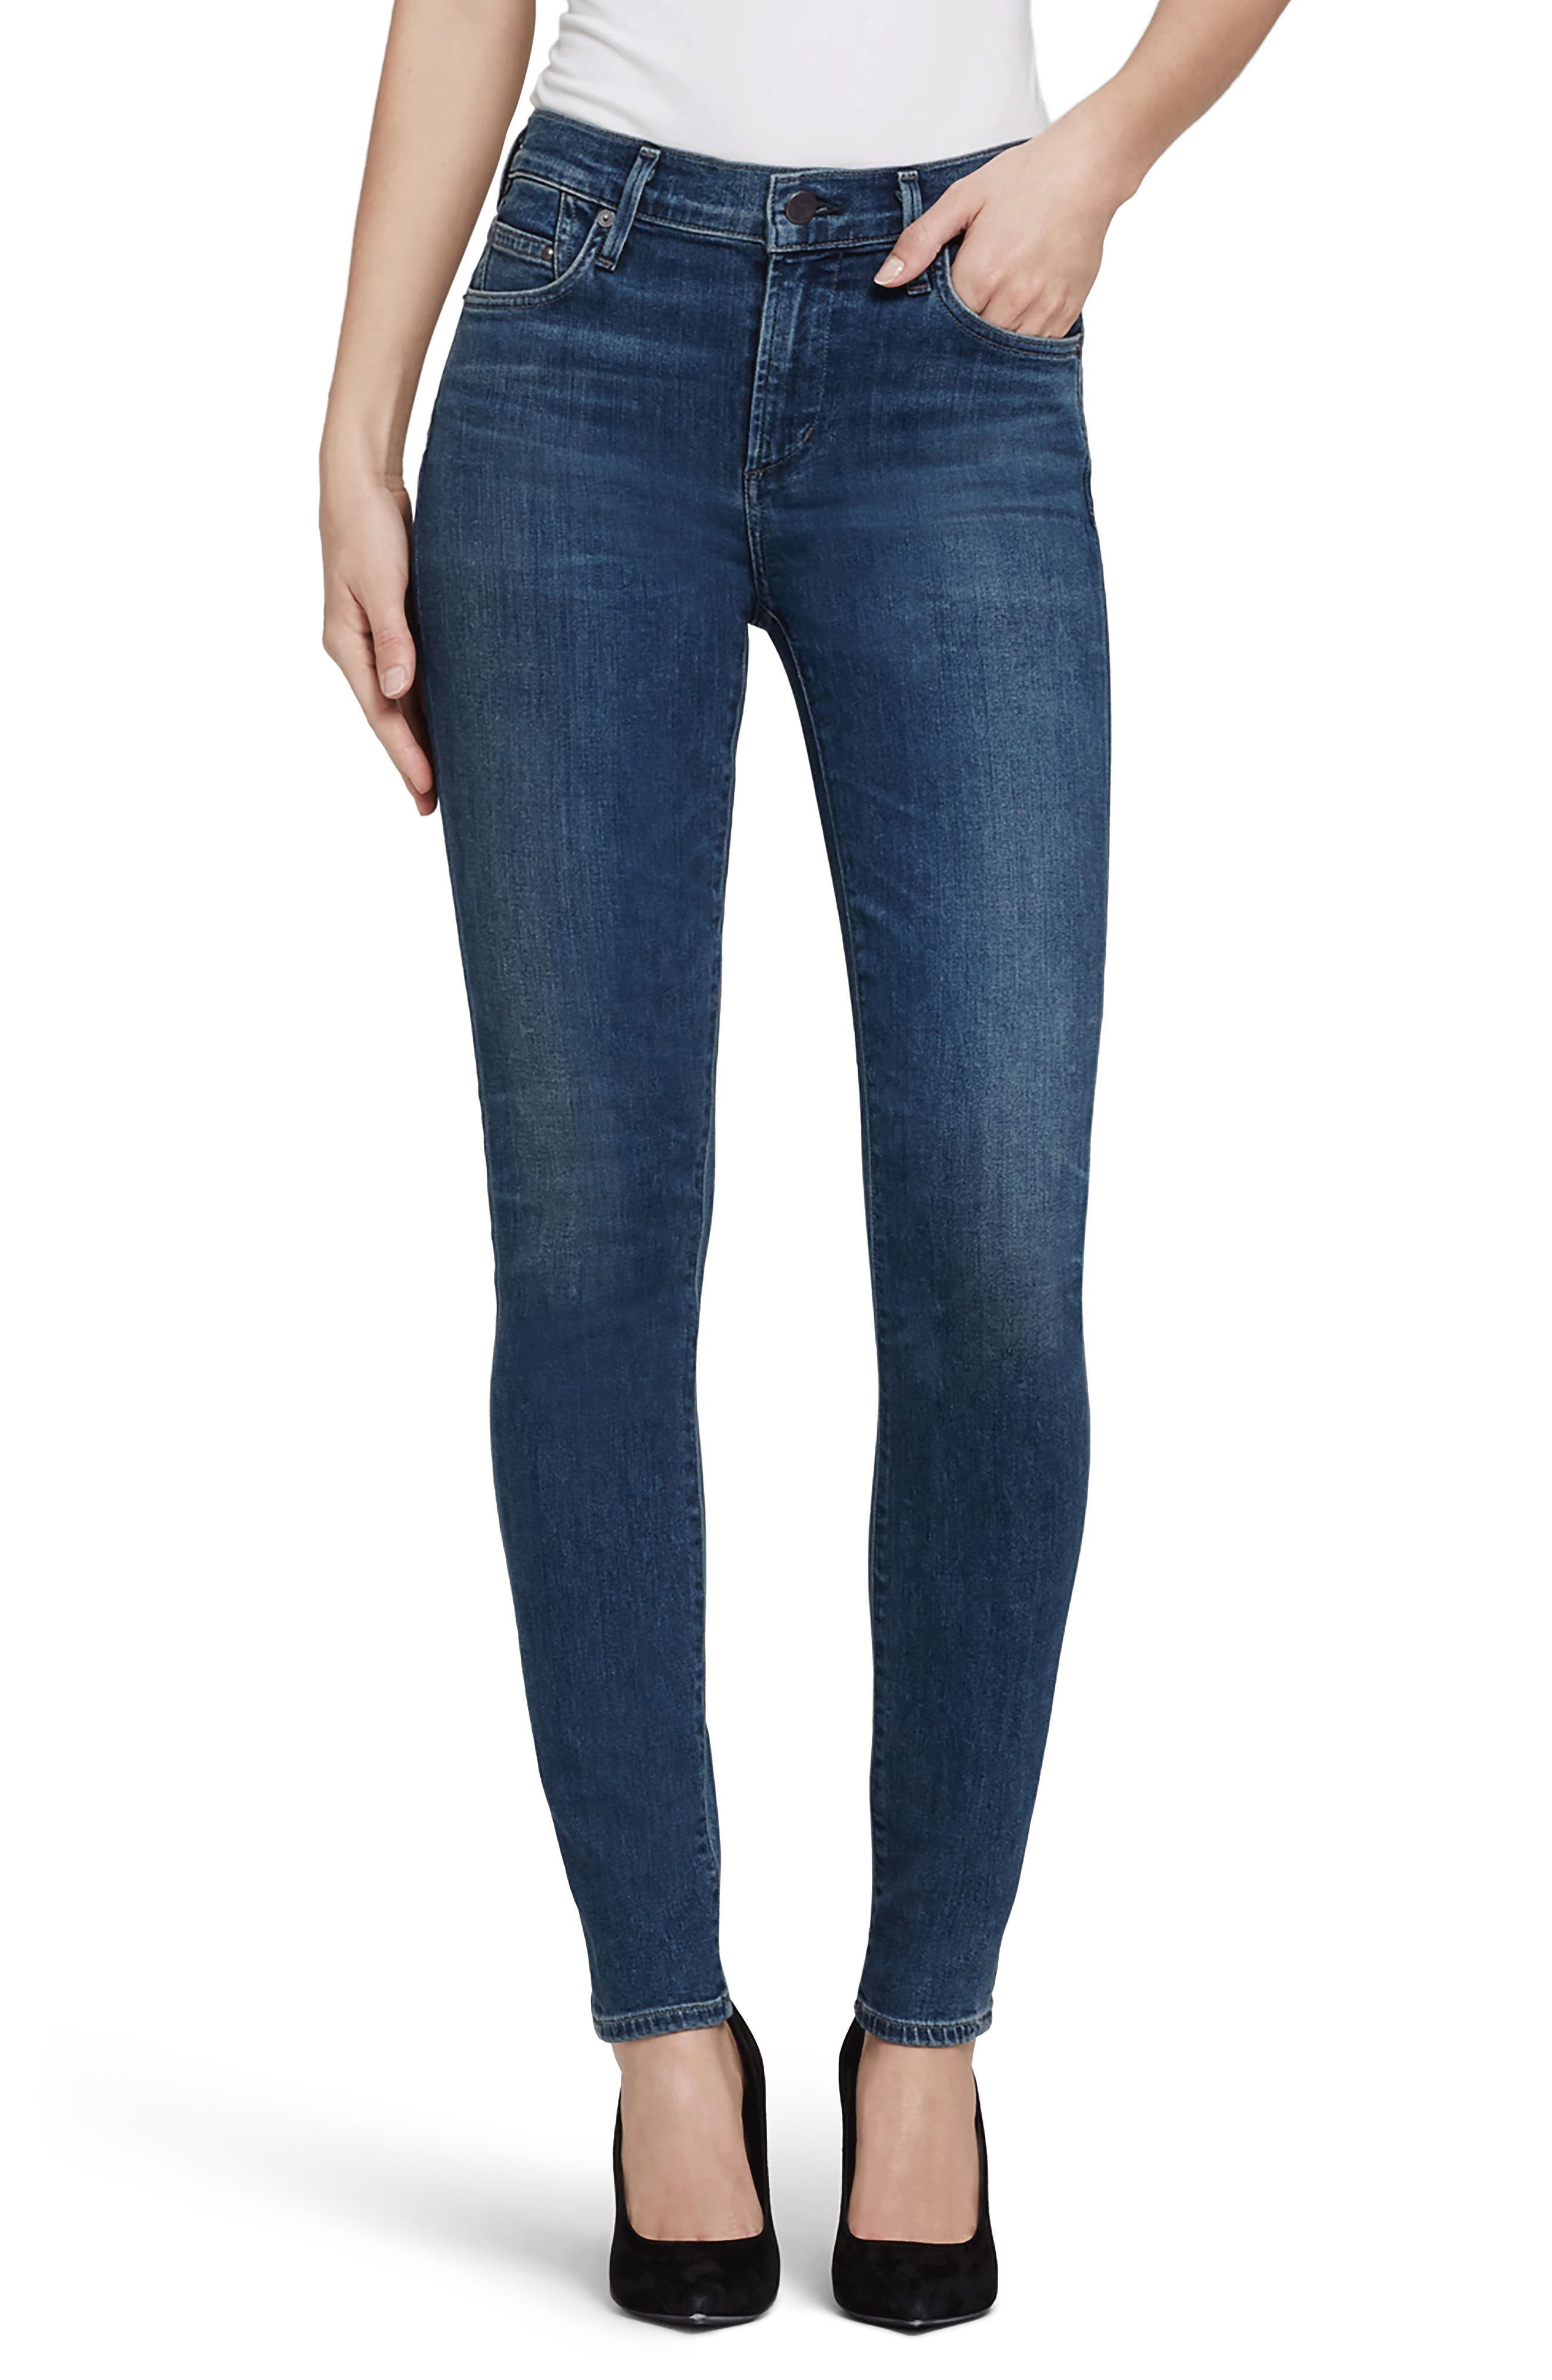 CITIZENS OF HUMANITY Rocket High Waist Skinny Jeans, Main, color, 430